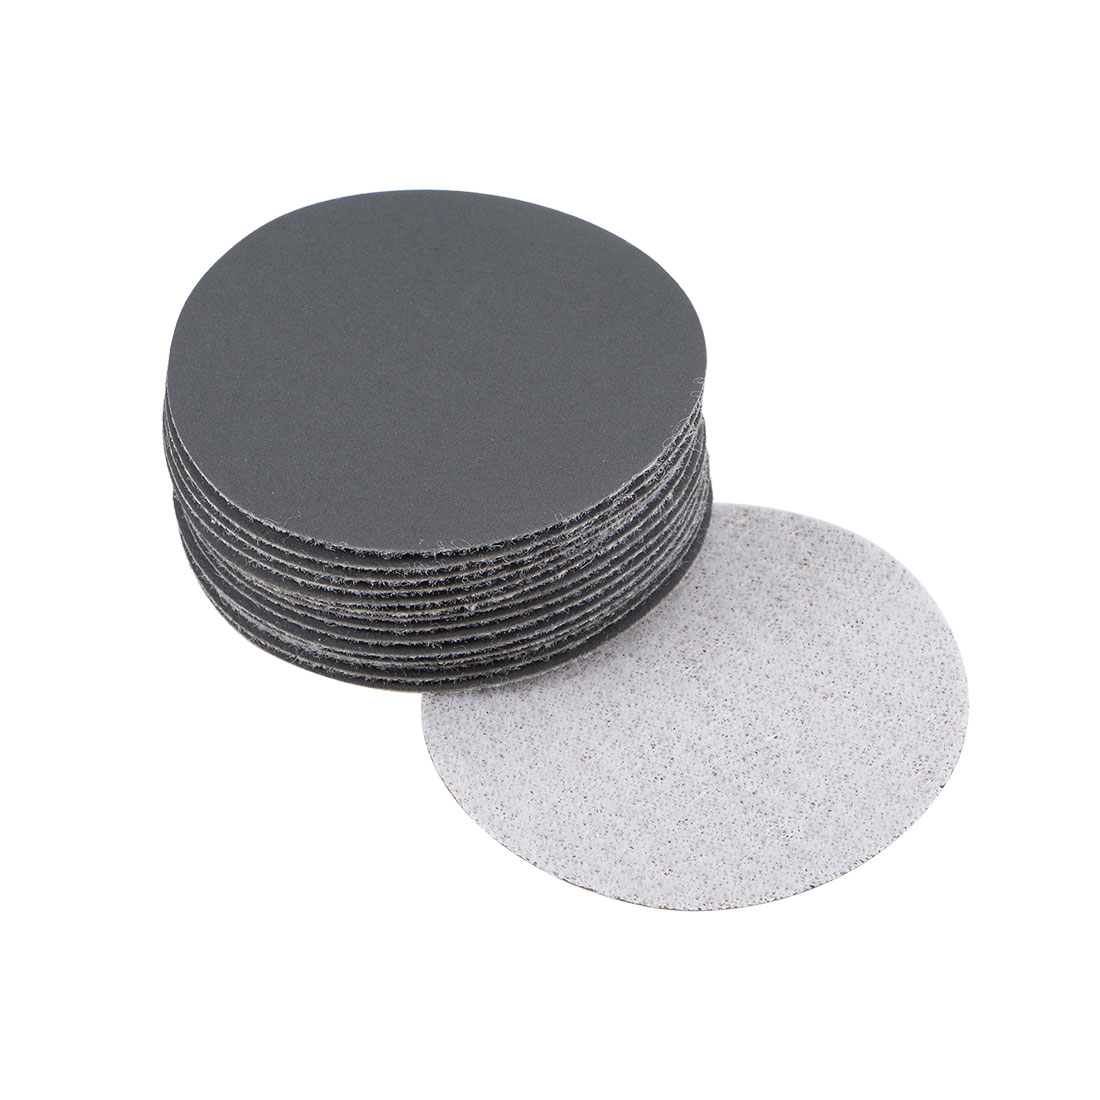 2 inch Wet Dry Discs 1200 Grit Hook and Loop Sanding Disc Silicon Carbide 15pcs